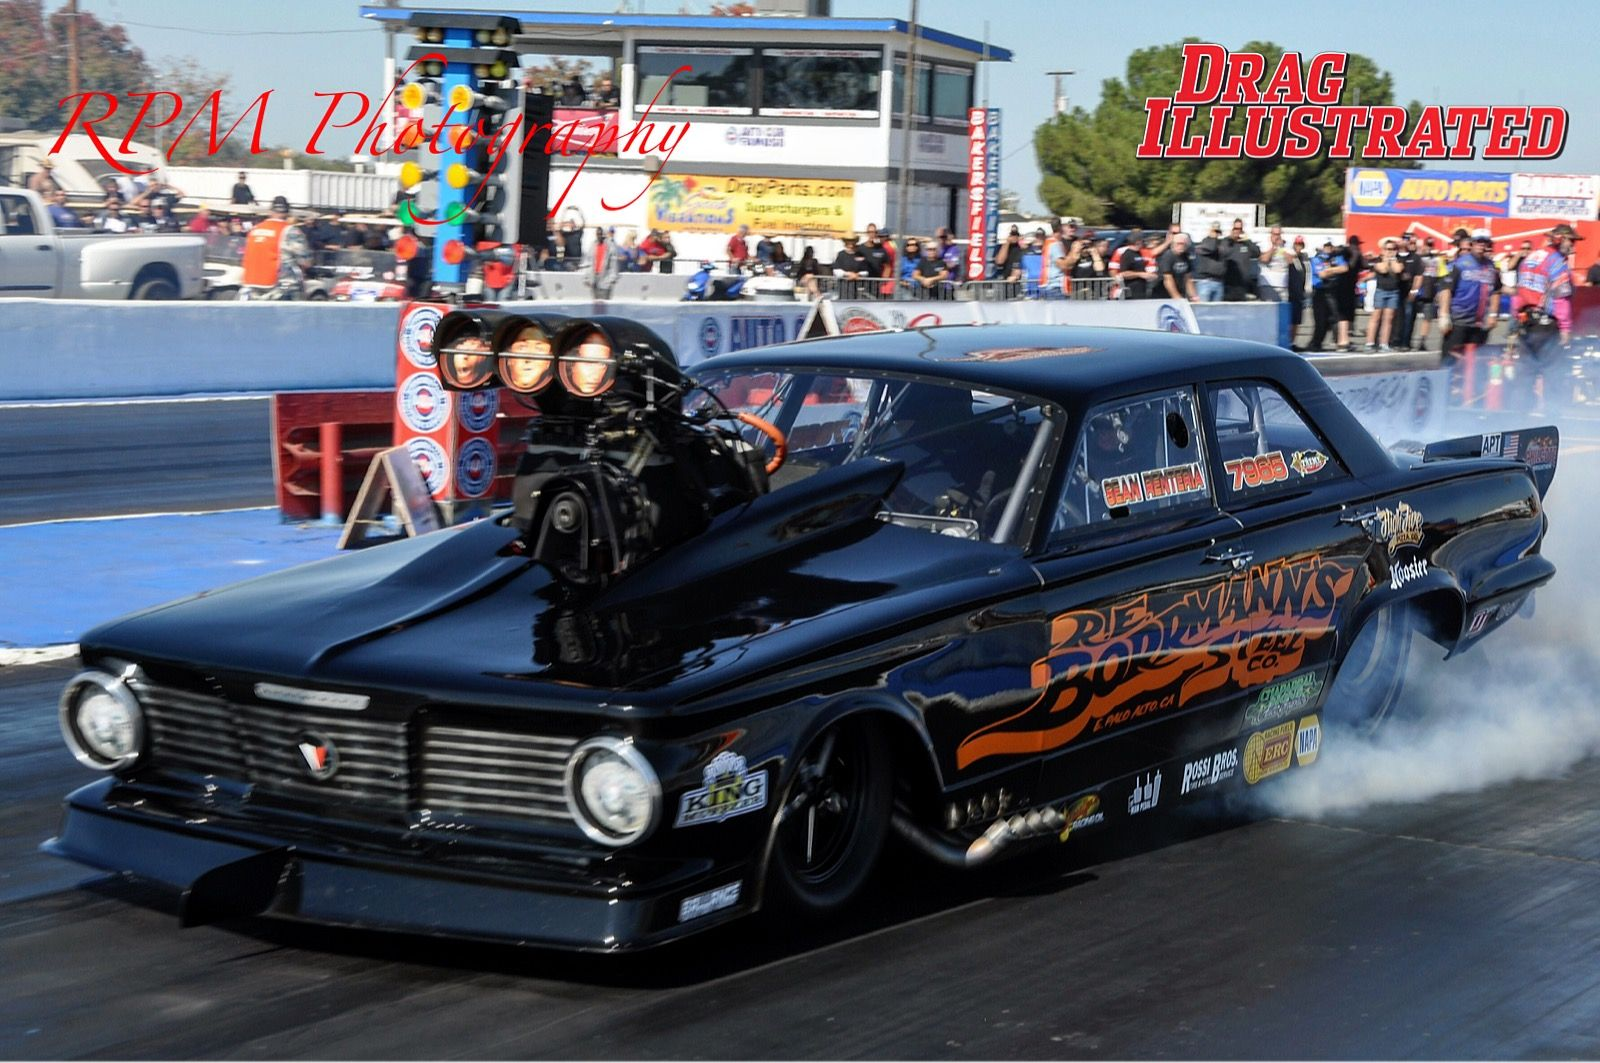 Pro Mod Mopar Drag Racing Cars Nhra Drag Racing Drag Racing